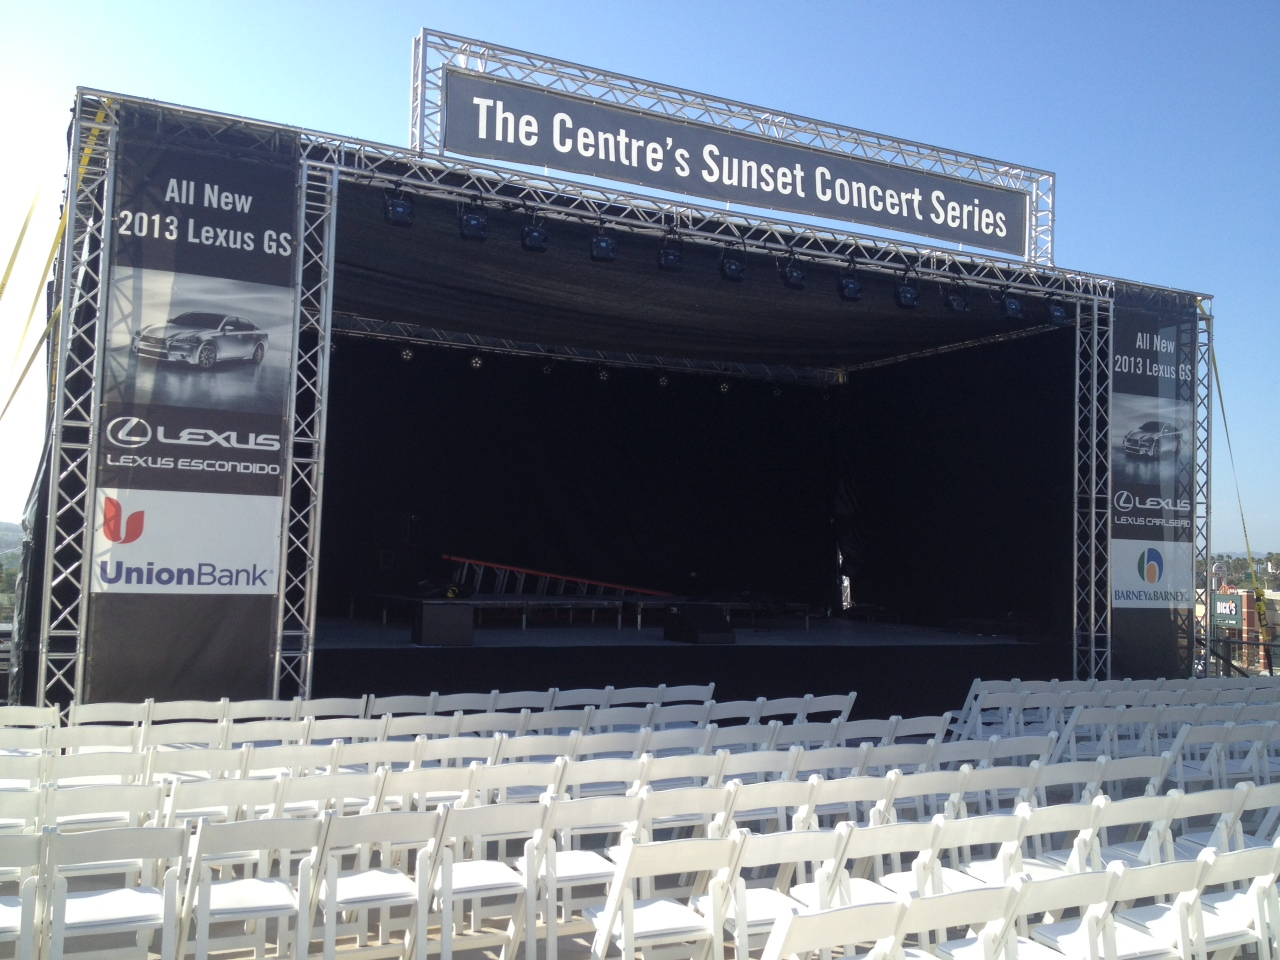 Concert Stage, Truss Roof, Lighting & Sound